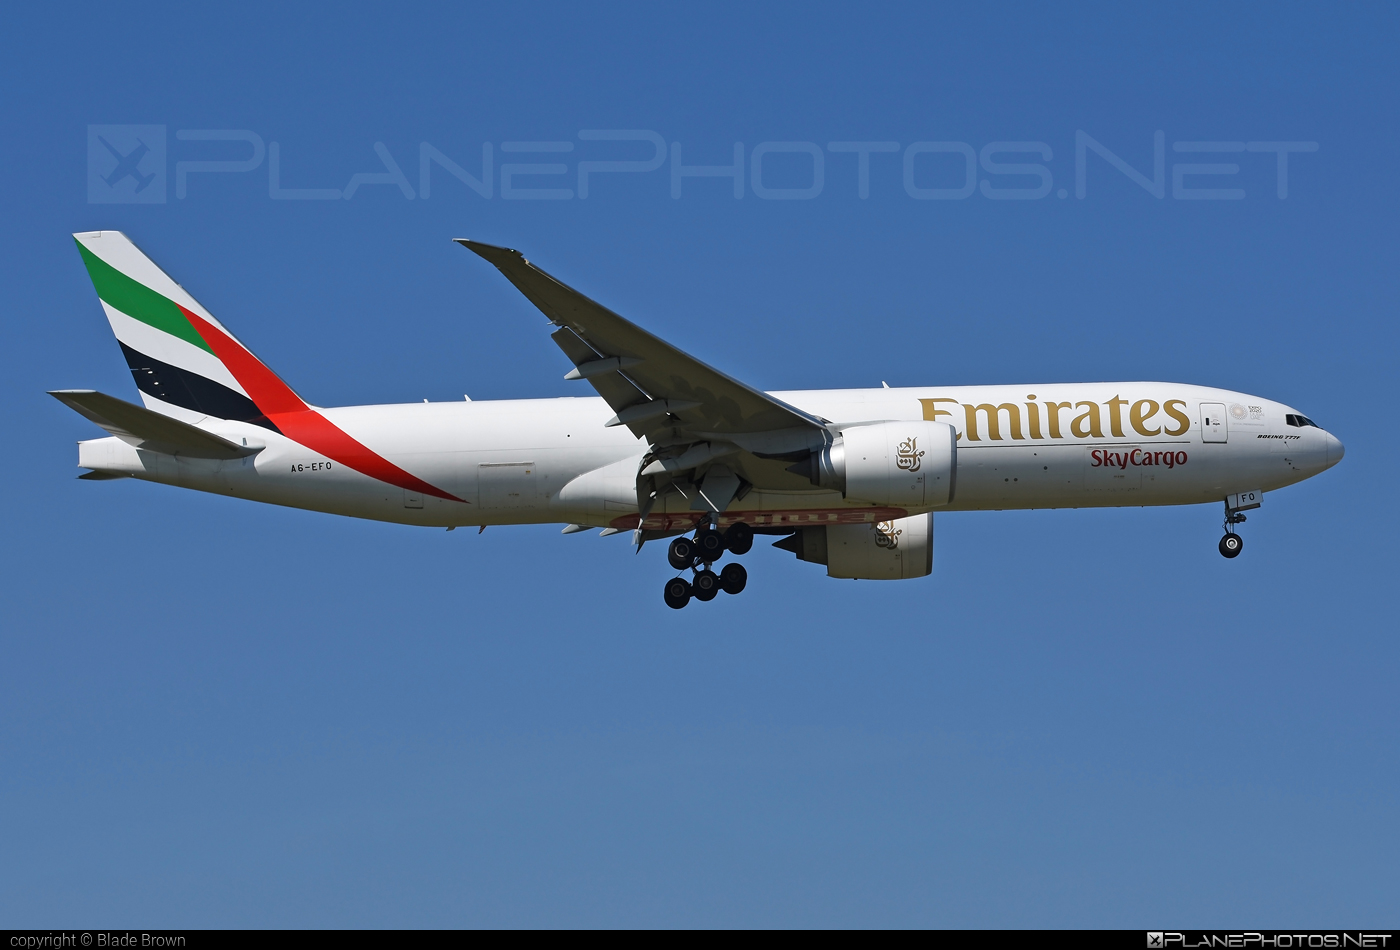 Boeing 777F - A6-EFO operated by Emirates SkyCargo #b777 #b777f #b777freighter #boeing #boeing777 #tripleseven